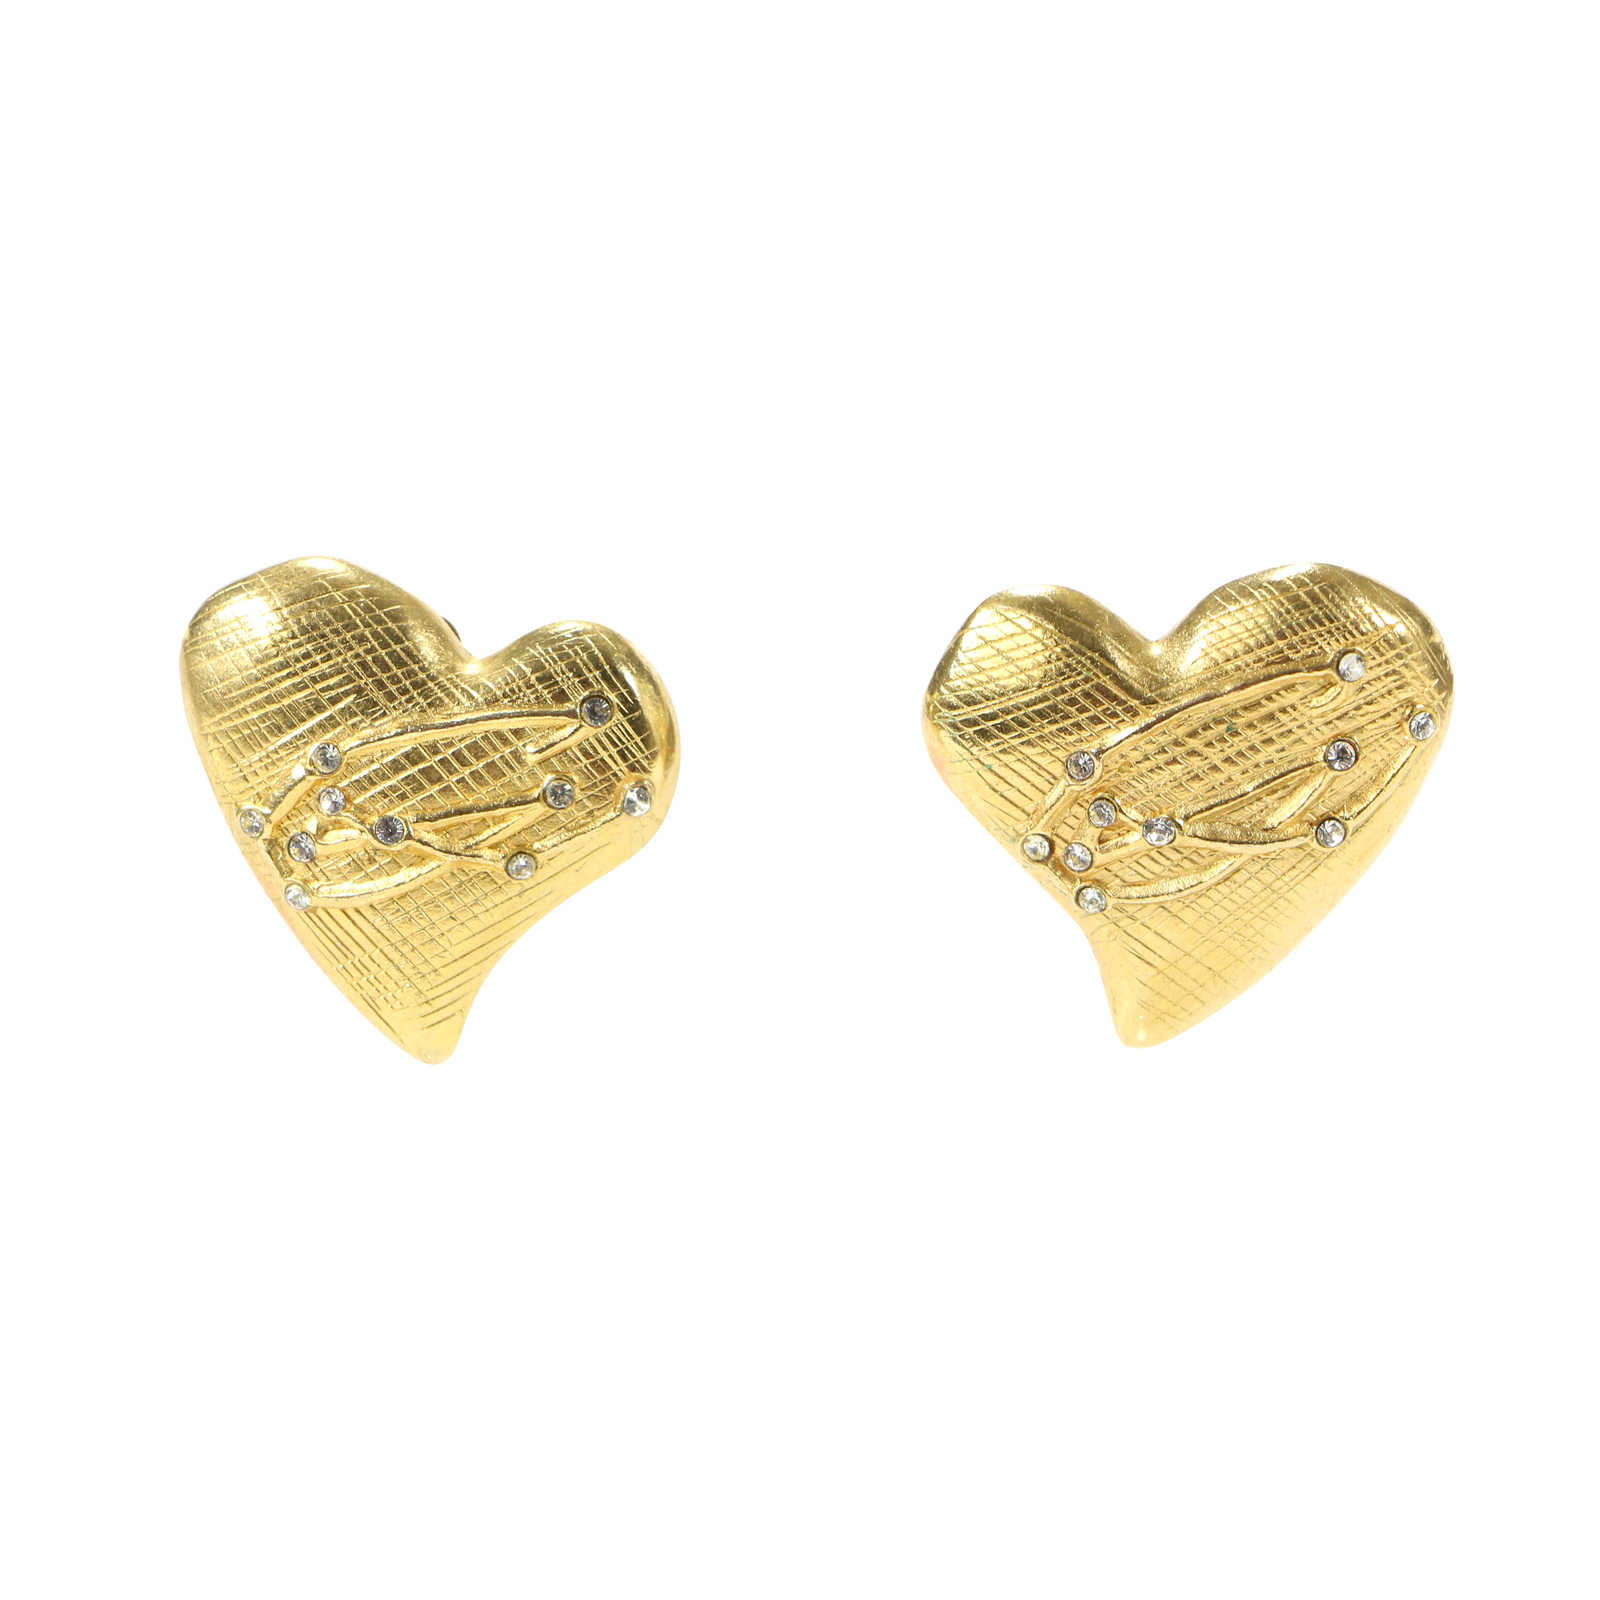 CHRISTIAN LACROIX - https://www.thefifthcollection.com/products/christian-lacroix-brushed-metal-stone-heart-earrings